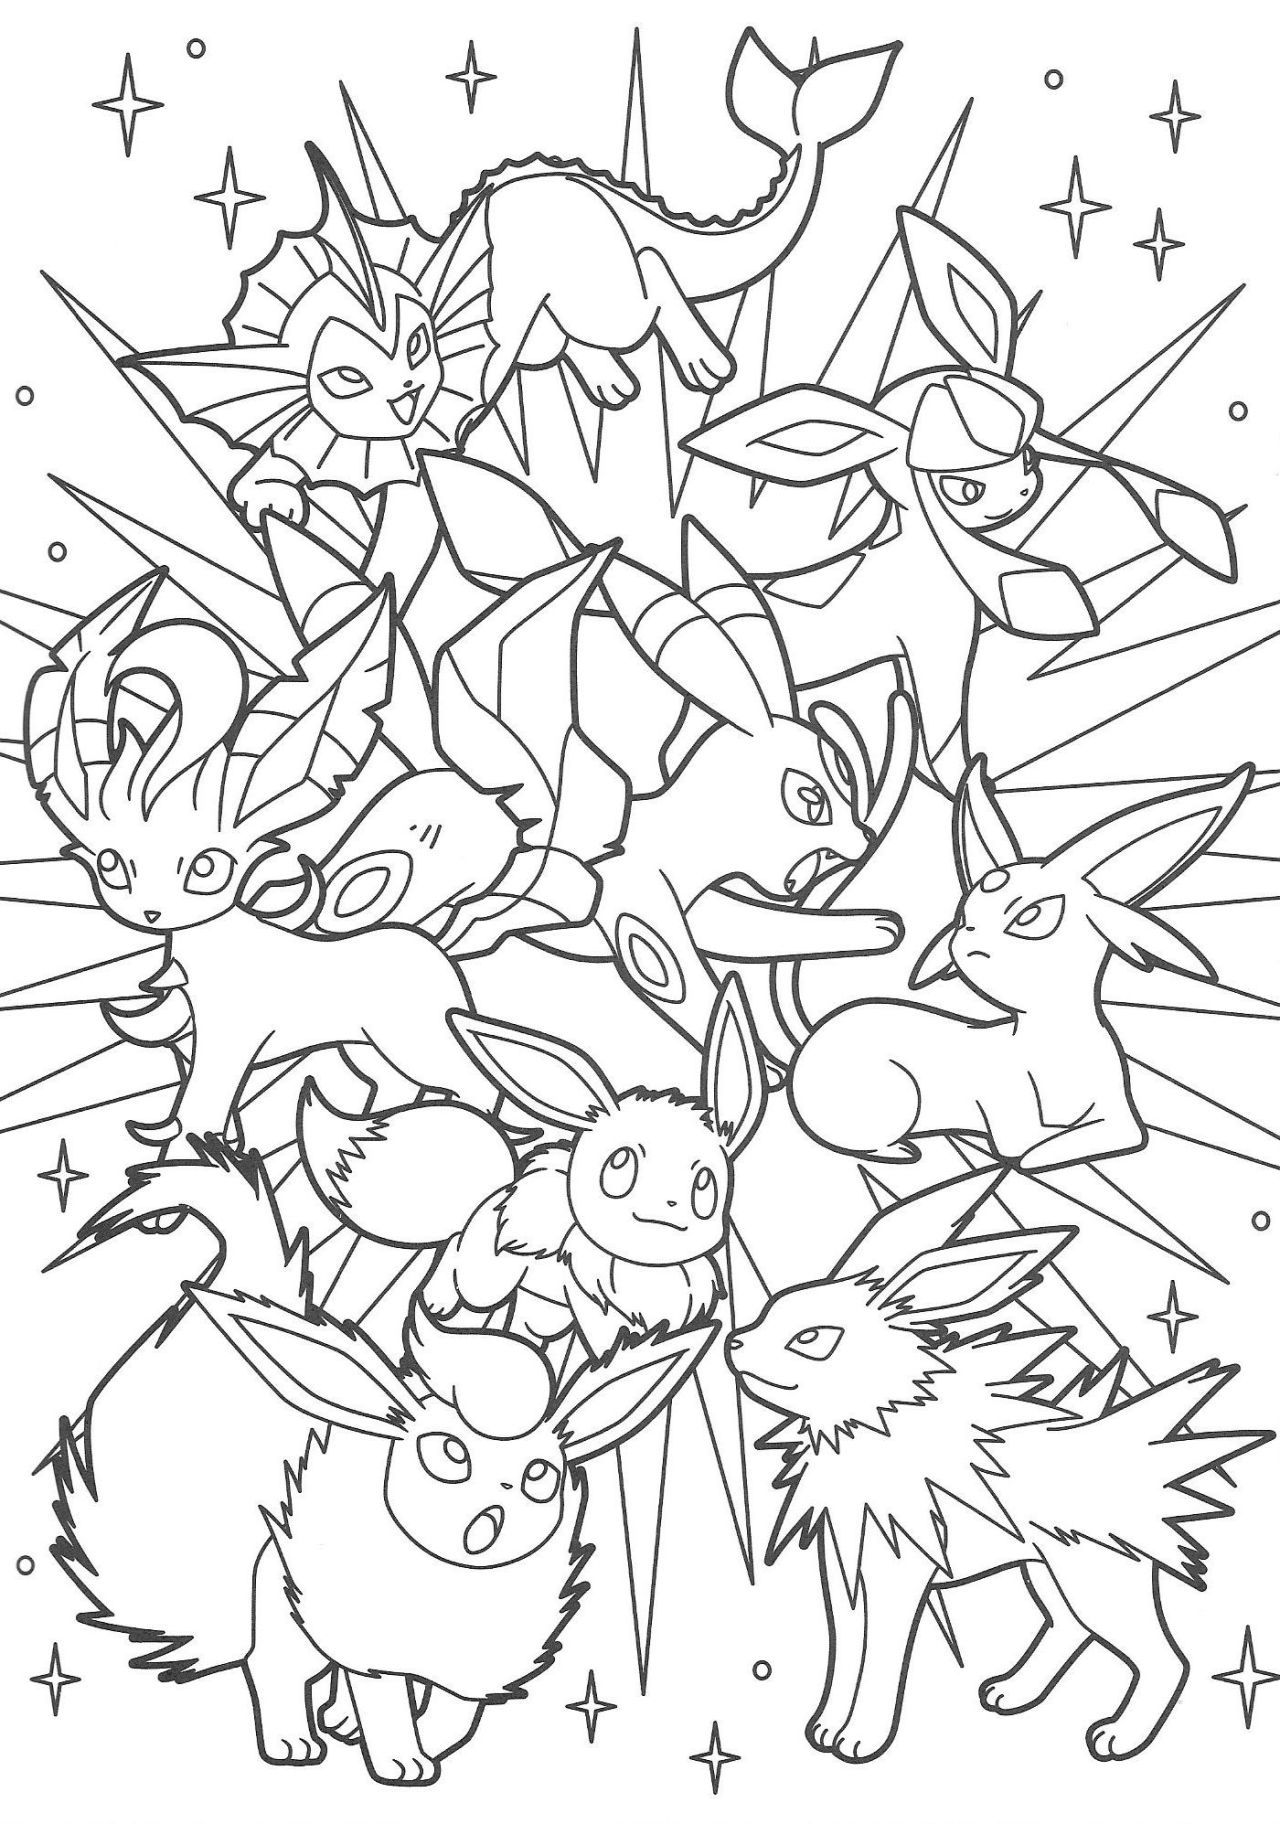 Pokémon Scans from PacificPikachu's Collection — Pikachu